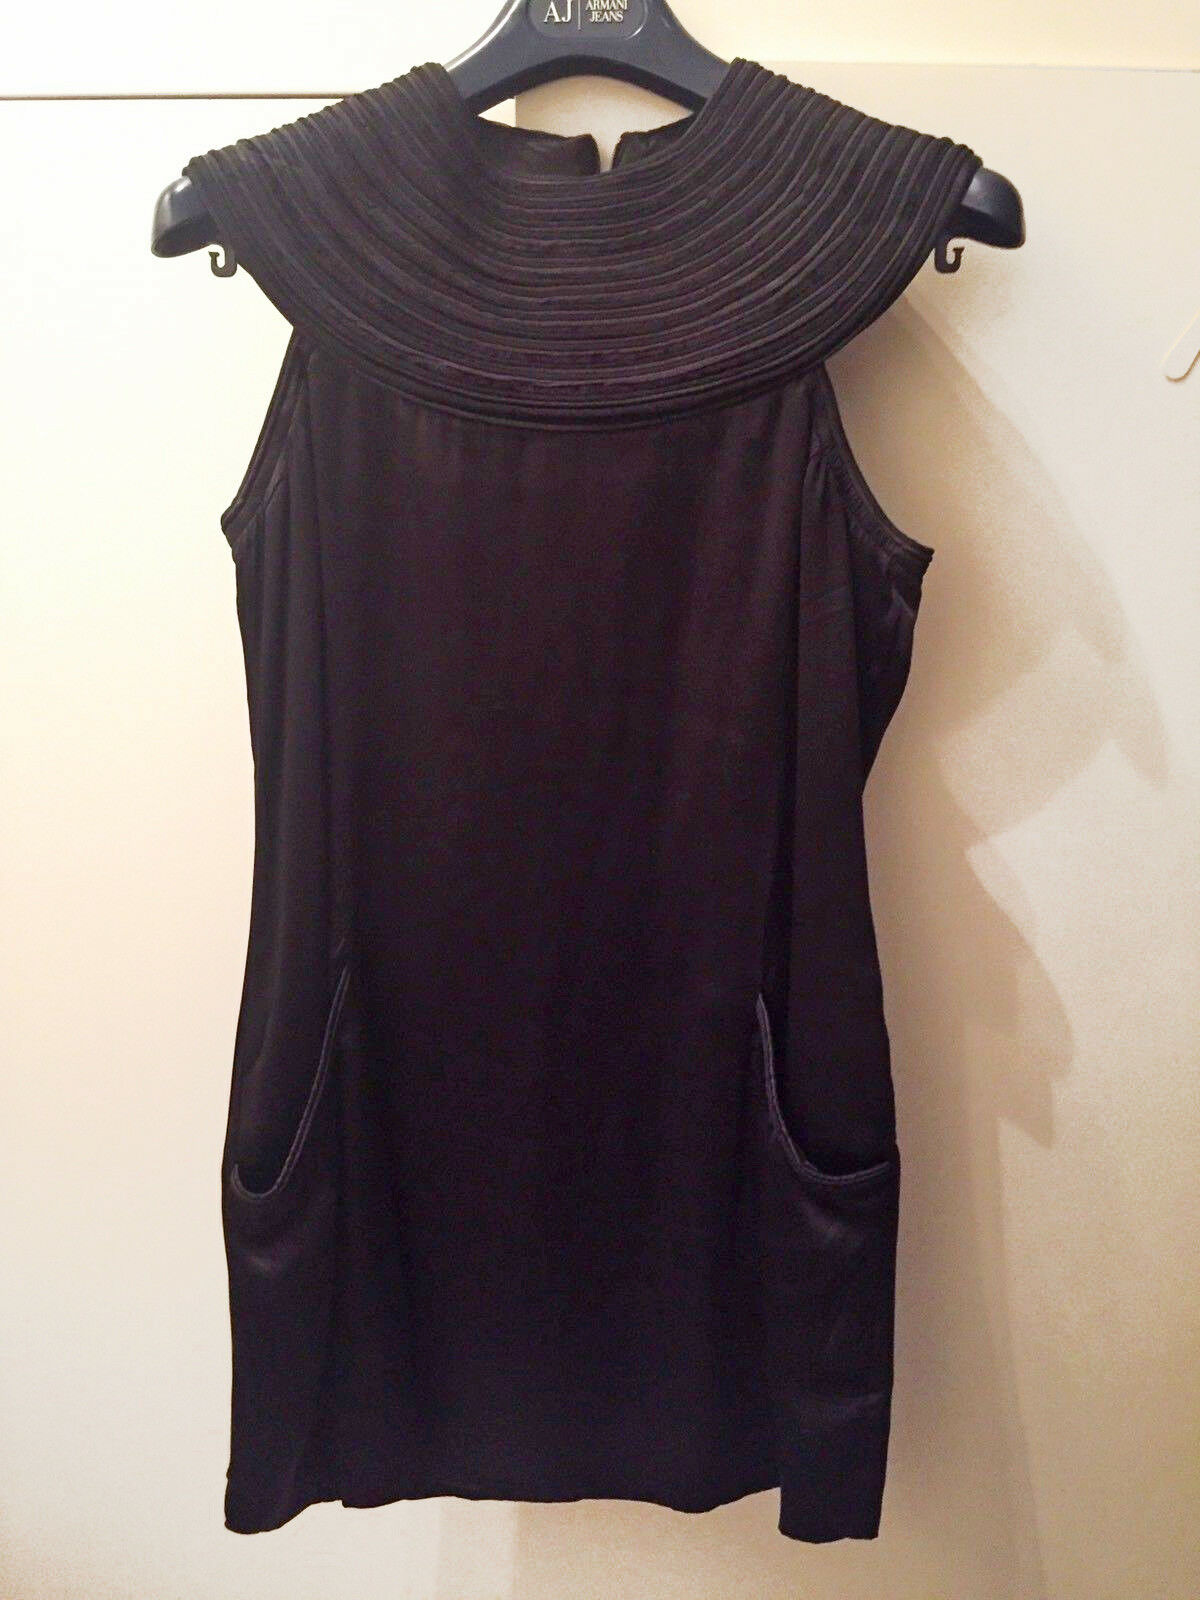 Armani Jeans - Short Dress - Cleopatra Style - excellent condition- Very Special